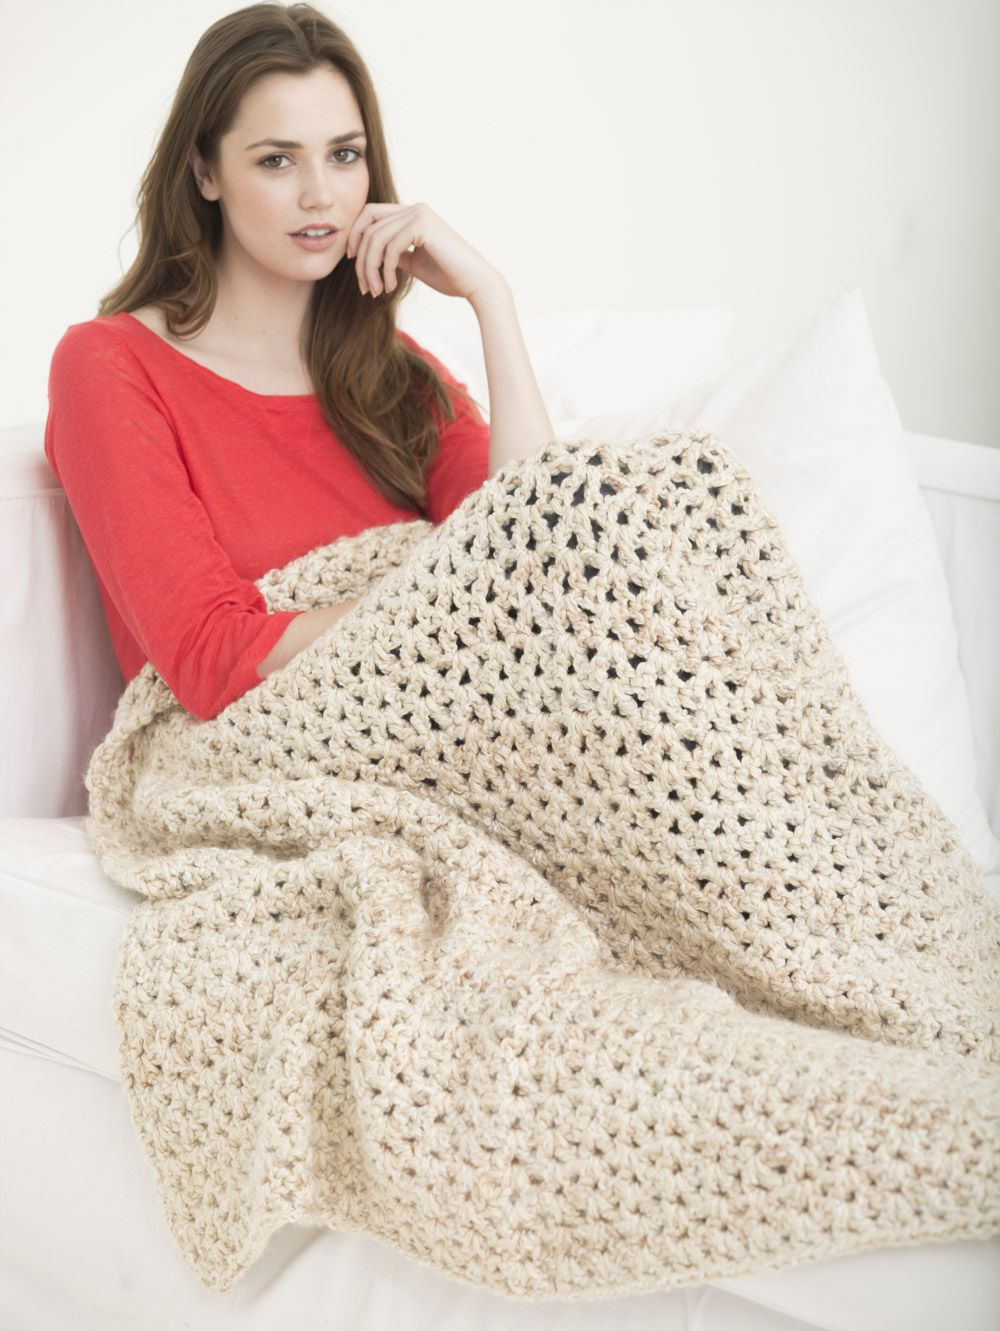 Crochet this 5 1/2 Hour Afghan with 2 of our Made in America ...